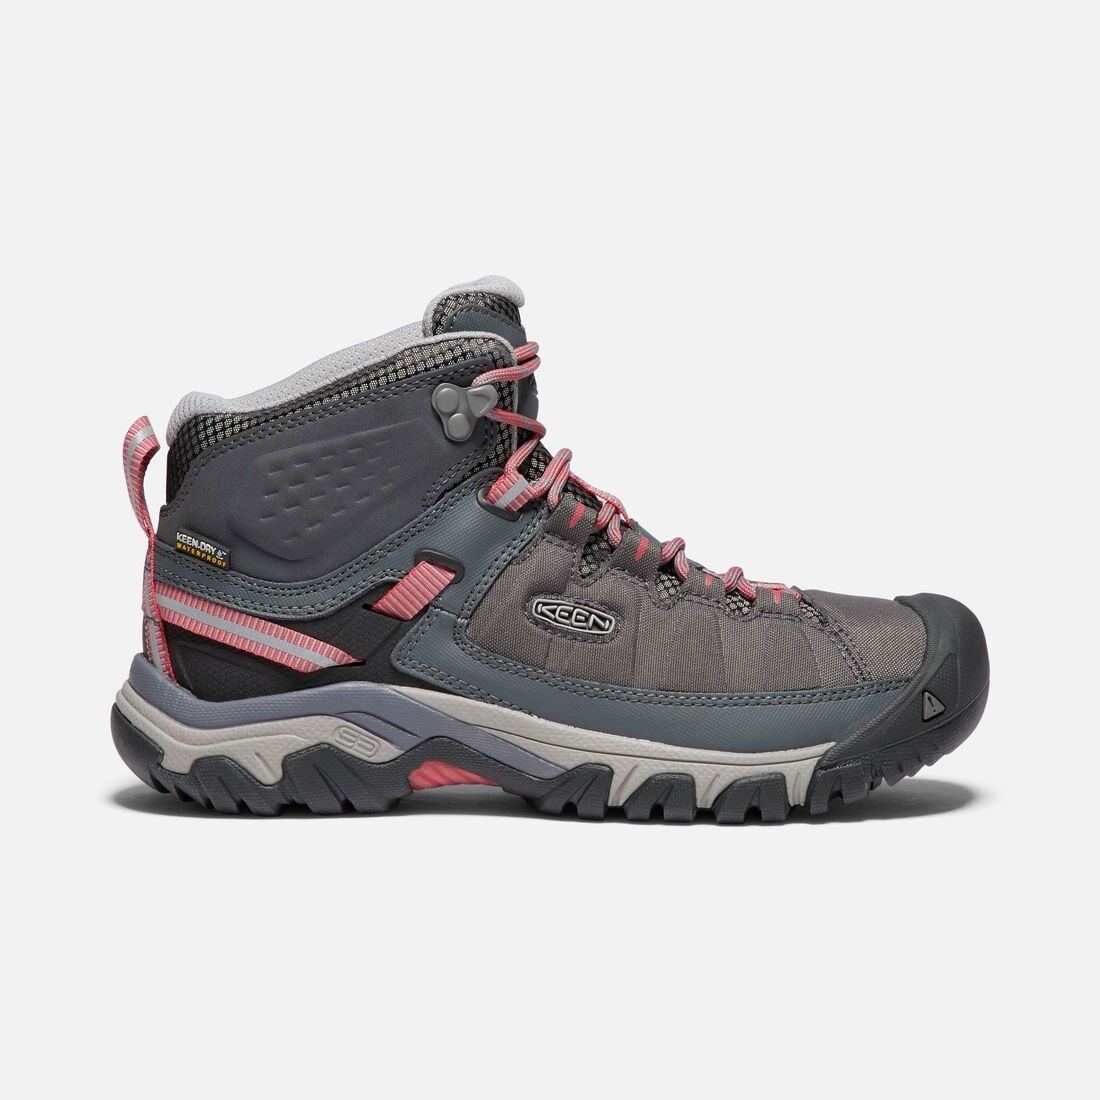 Womens New Keen Targhee II Exp Mid WP Boots shoes Size 9.5 color Magnet Teaberry